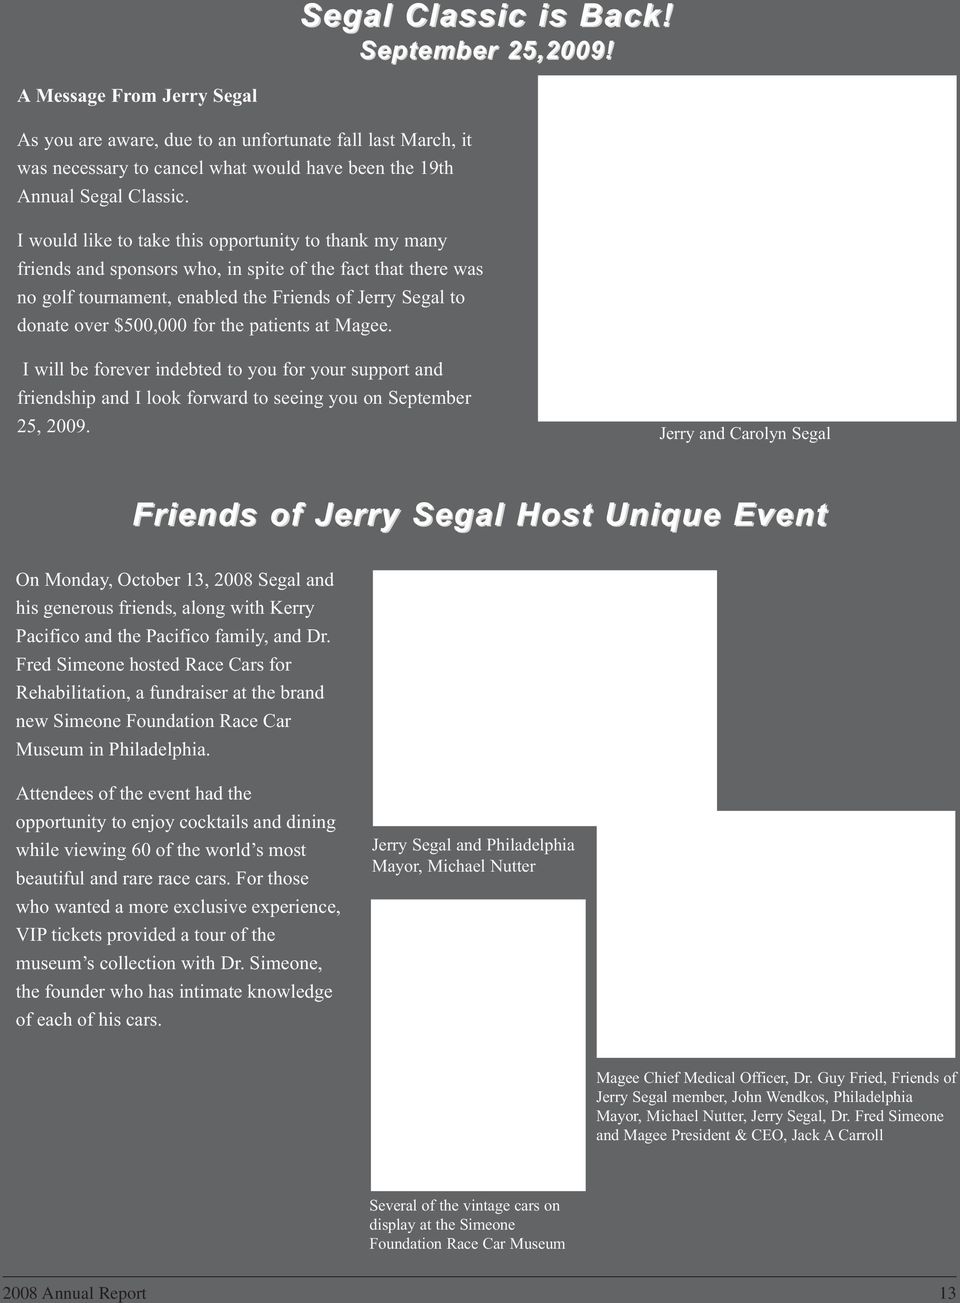 I would like to take this opportunity to thank my many friends and sponsors who, in spite of the fact that there was no golf tournament, enabled the Friends of Jerry Segal to donate over $500,000 for